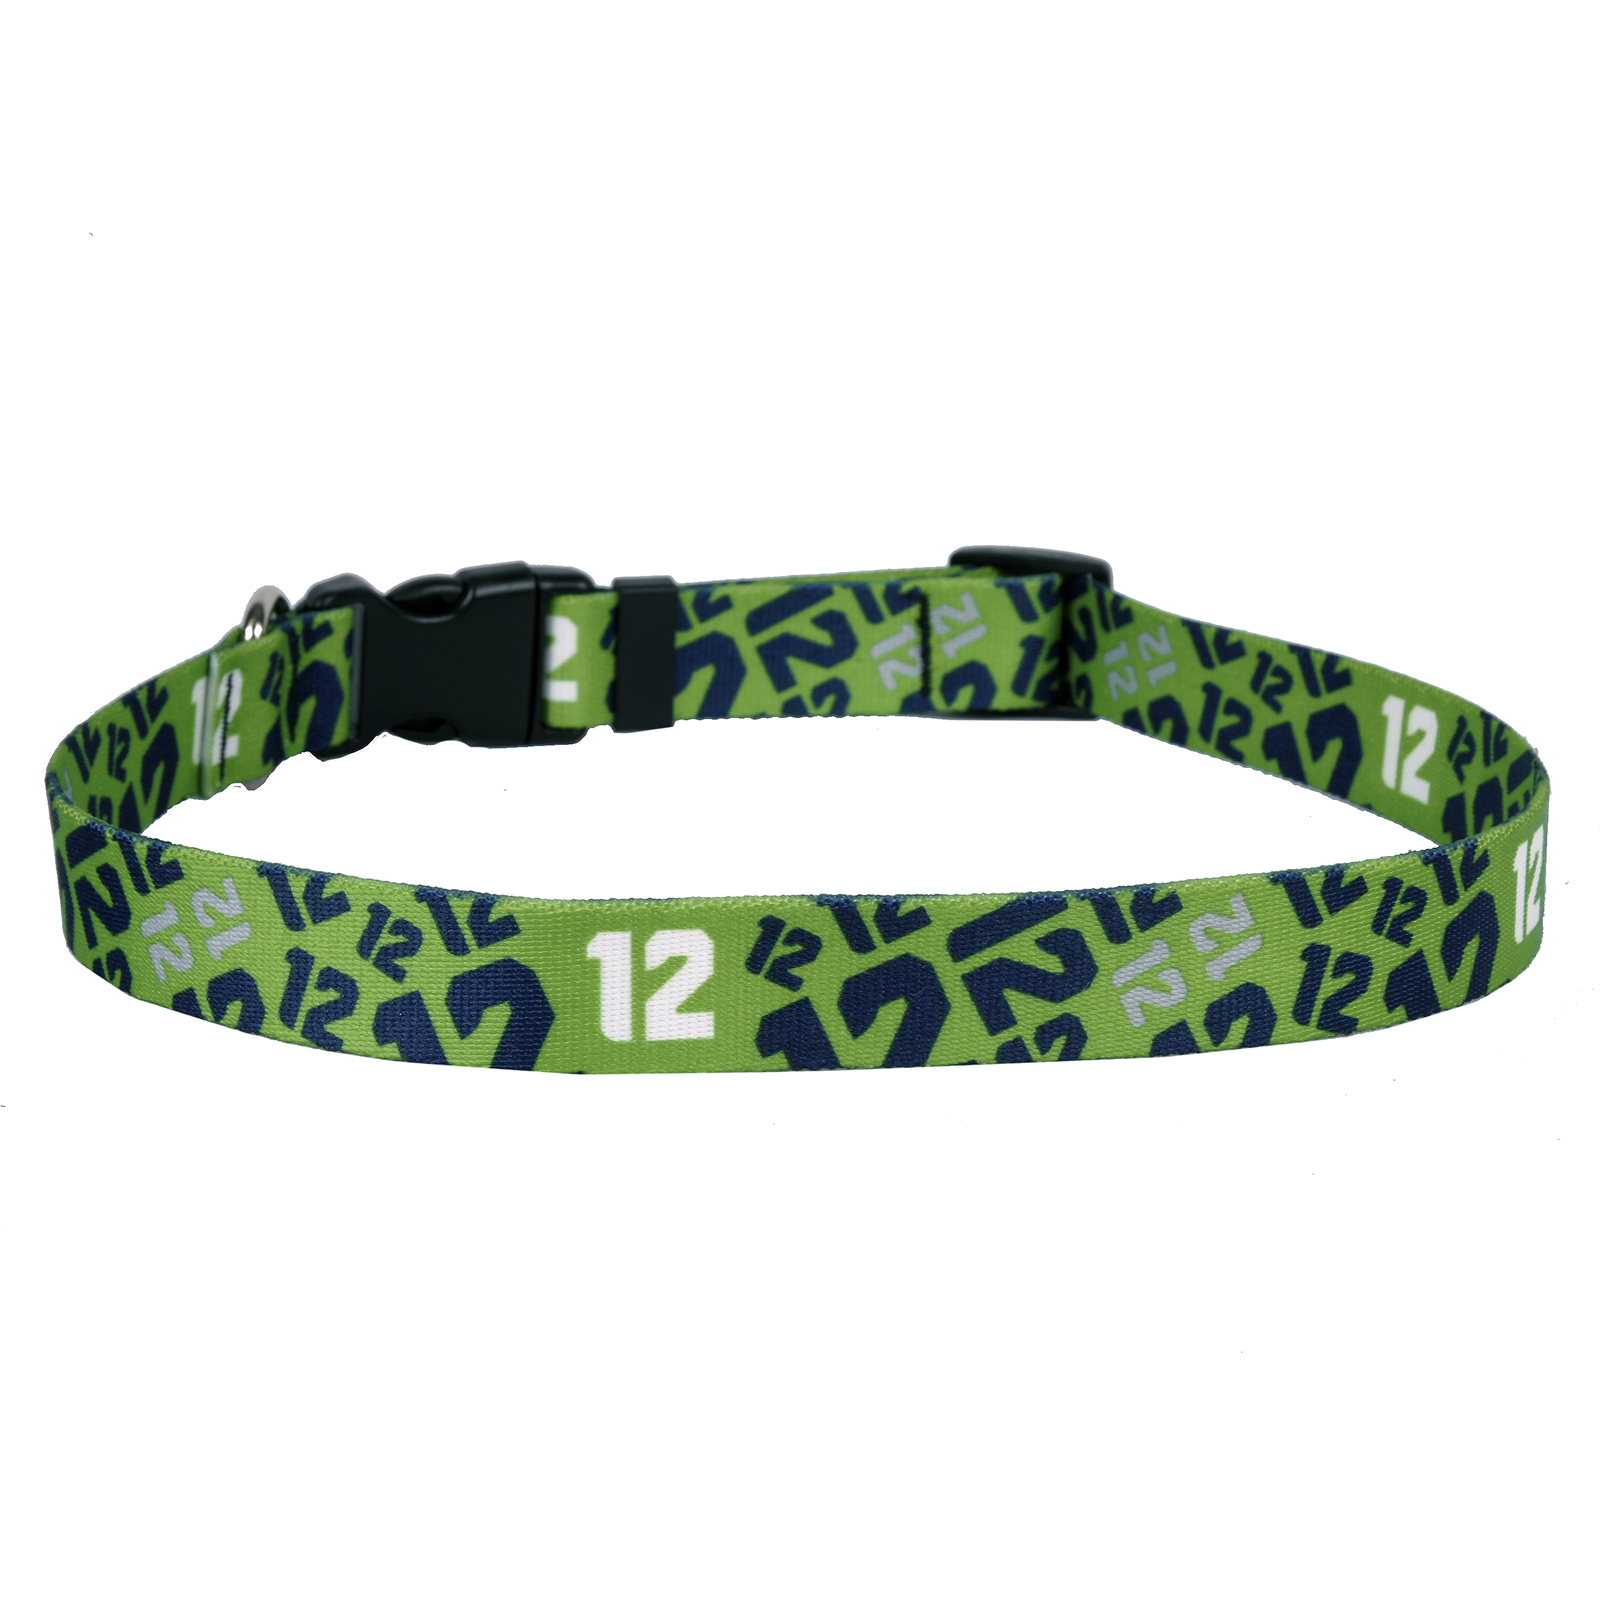 12th Dog Green Standard Collar